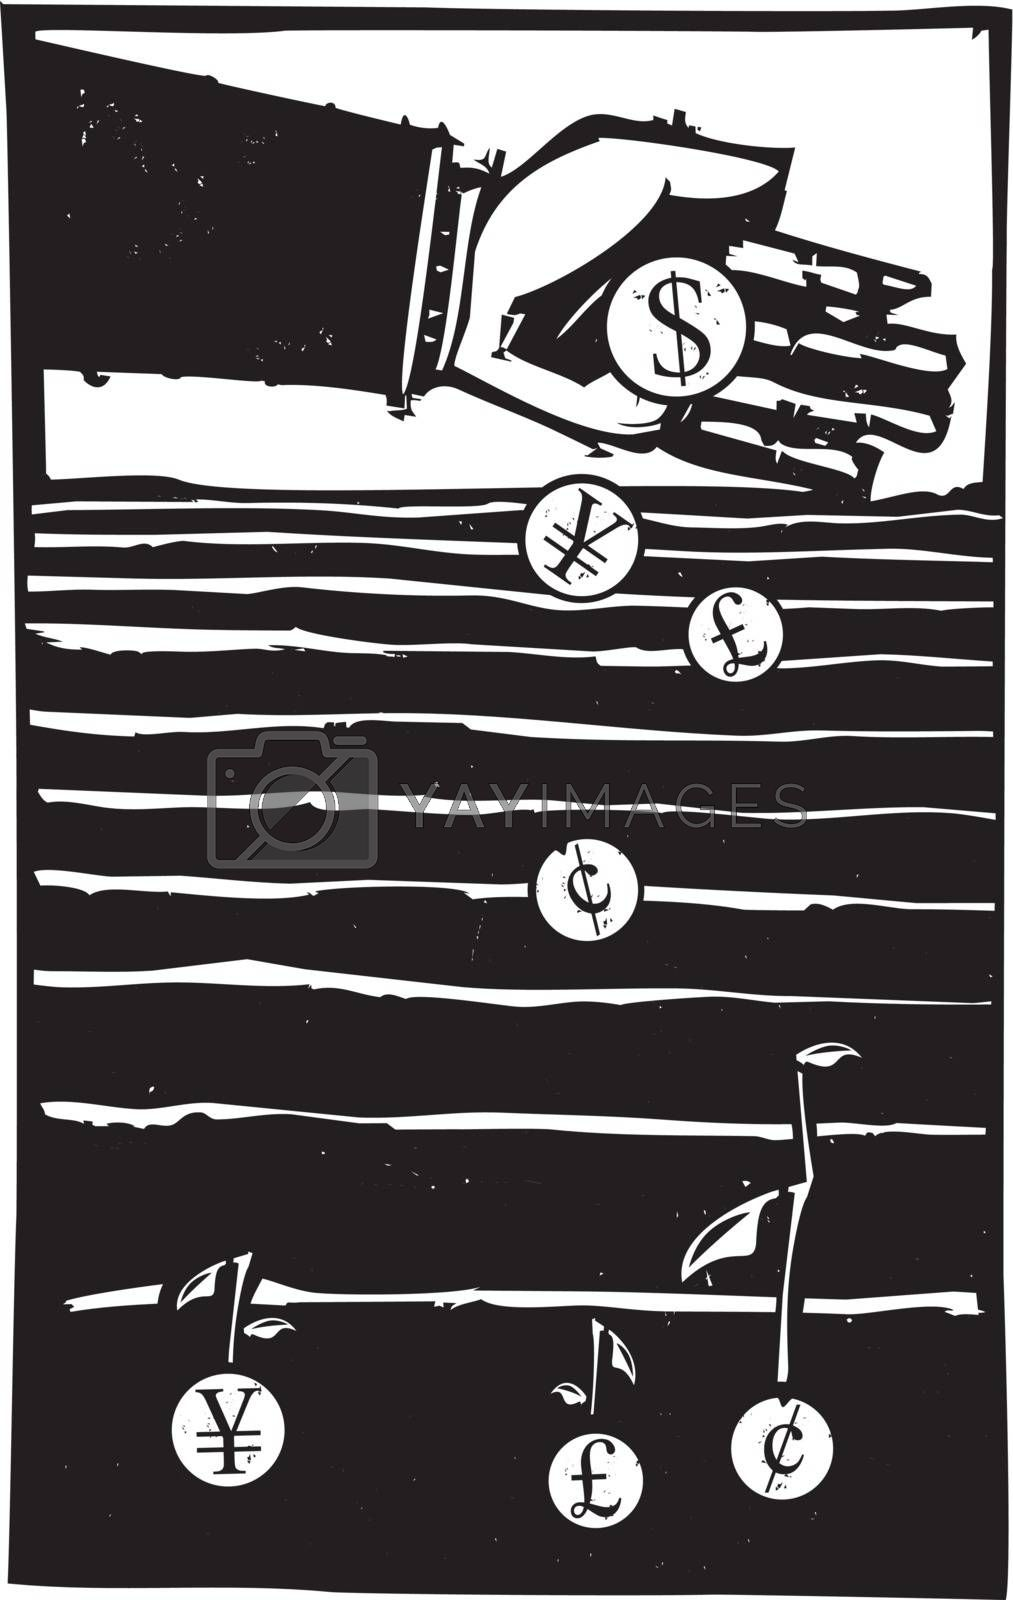 Woodcut style expressionist image of a bankers hand planting coins in a field growing money.